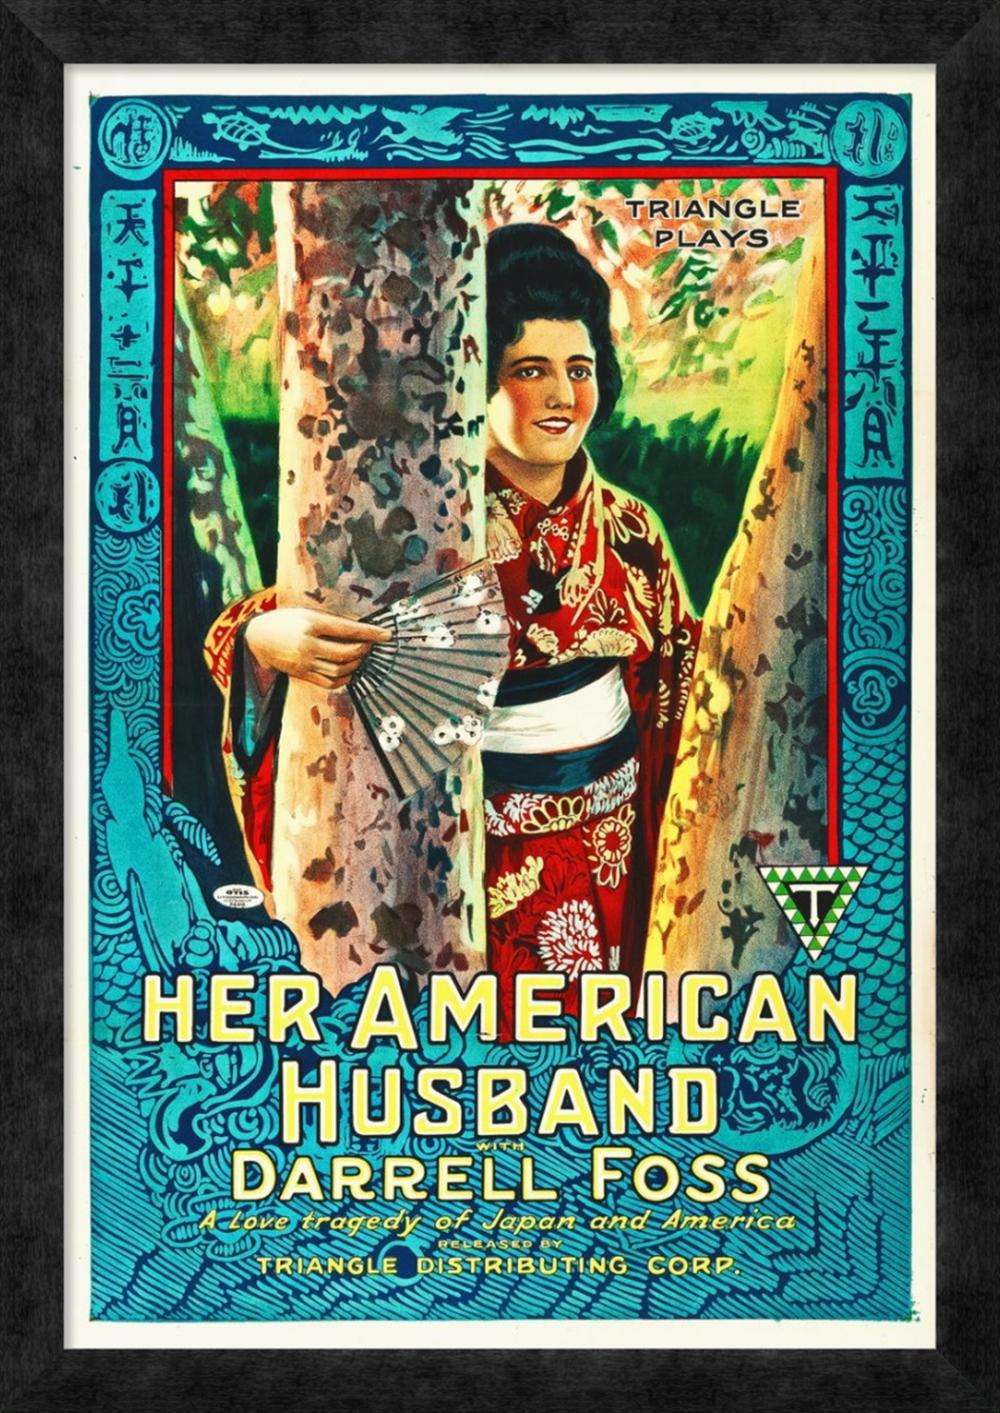 HOLLYWOOD PHOTO ARCHIVE - HER AMERICAN HUSBAND